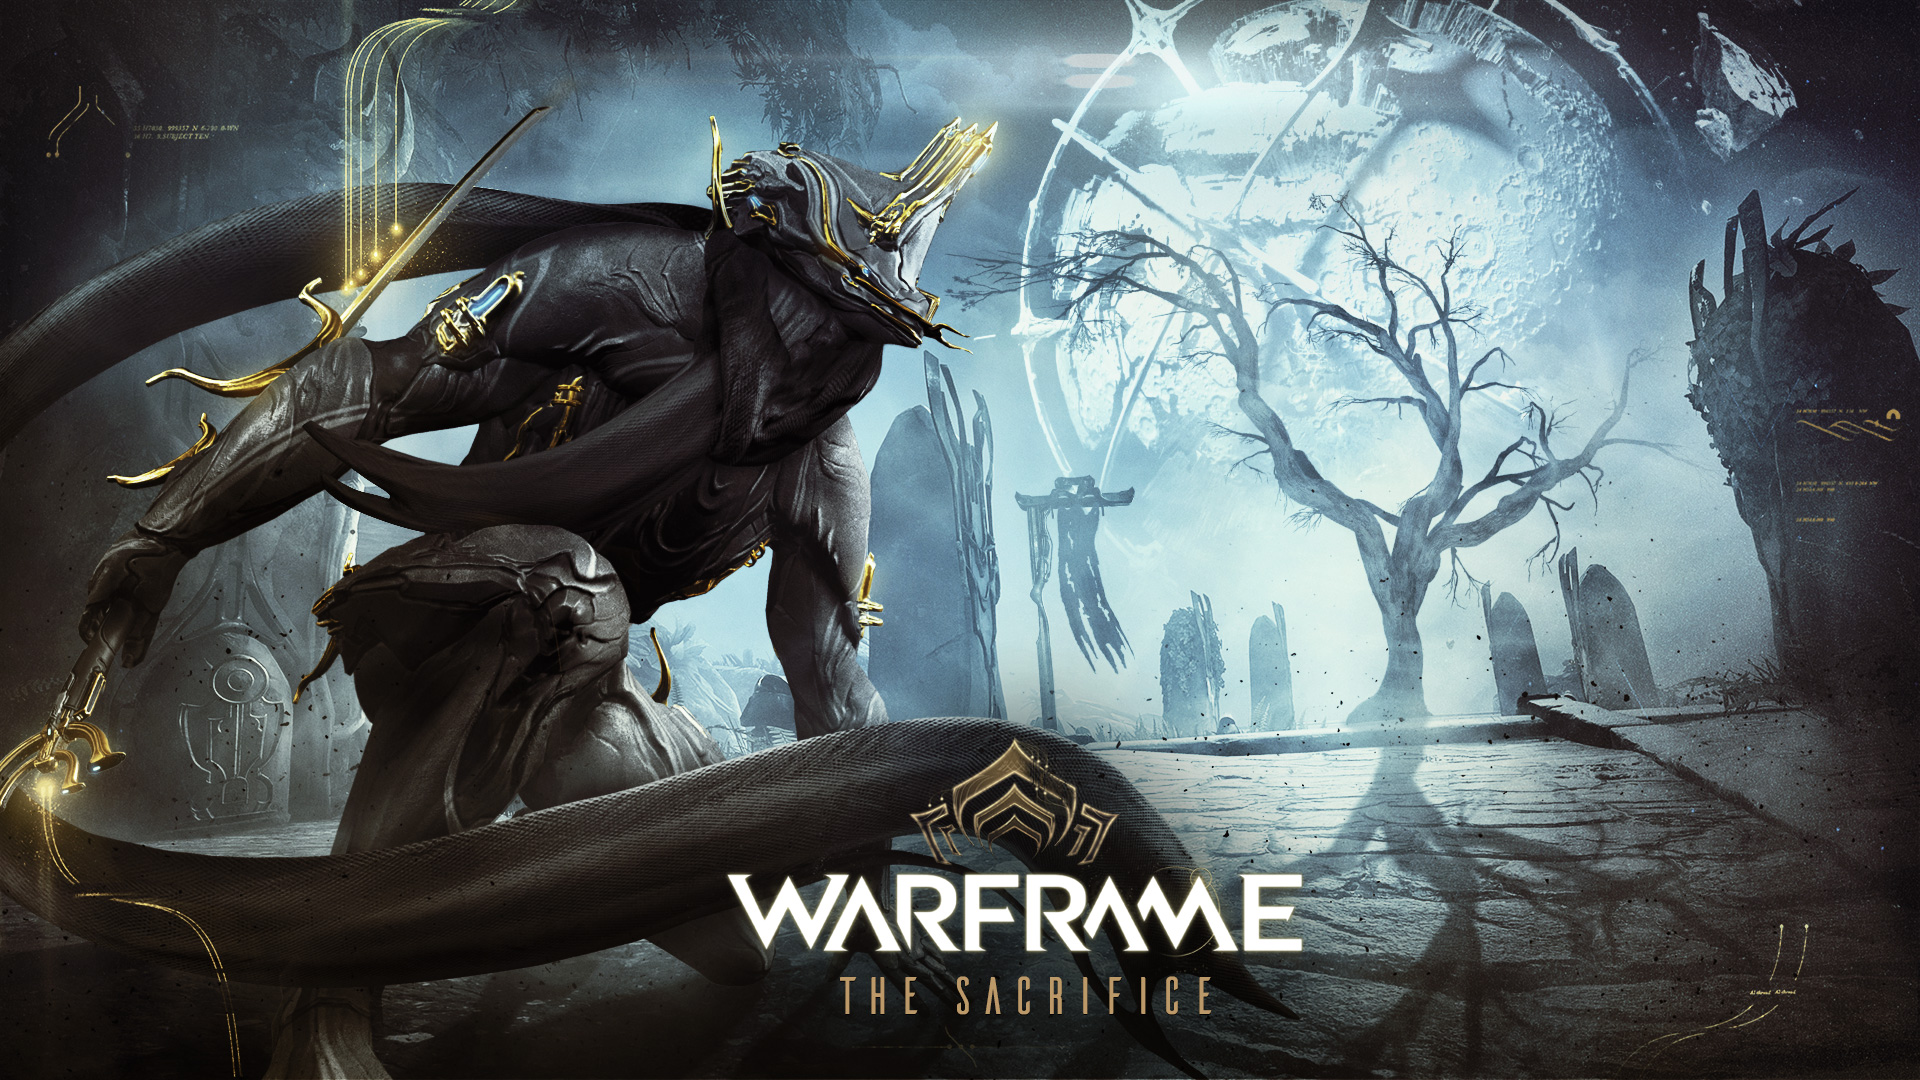 Warframe's The Sacrifice Cinematic Quest Available Now on PC, Later